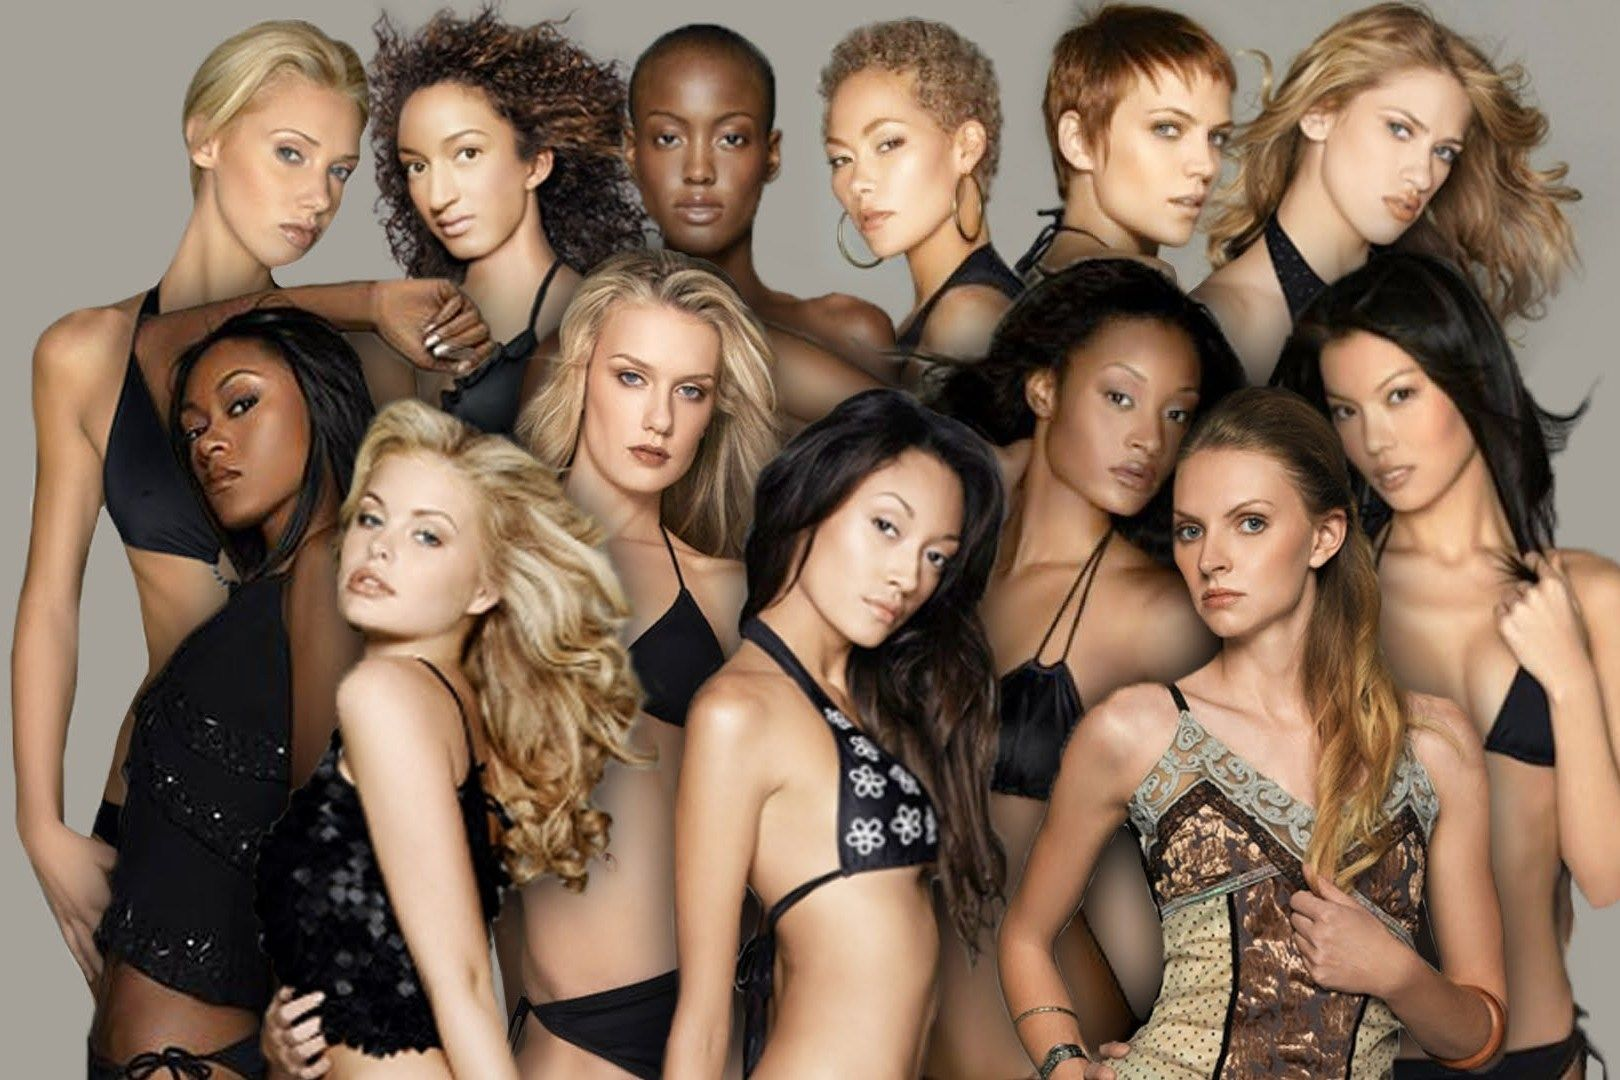 the negative effects of the tv show americas next top model on teenagers Influence of mass media on today's young people  possible effects of media on young and old citi zens range from the more obvious ones to those more subtle there are fears as to the content of media: violence, lawlessness, breakdown in moral  tv violence while continuing to air brutal and.